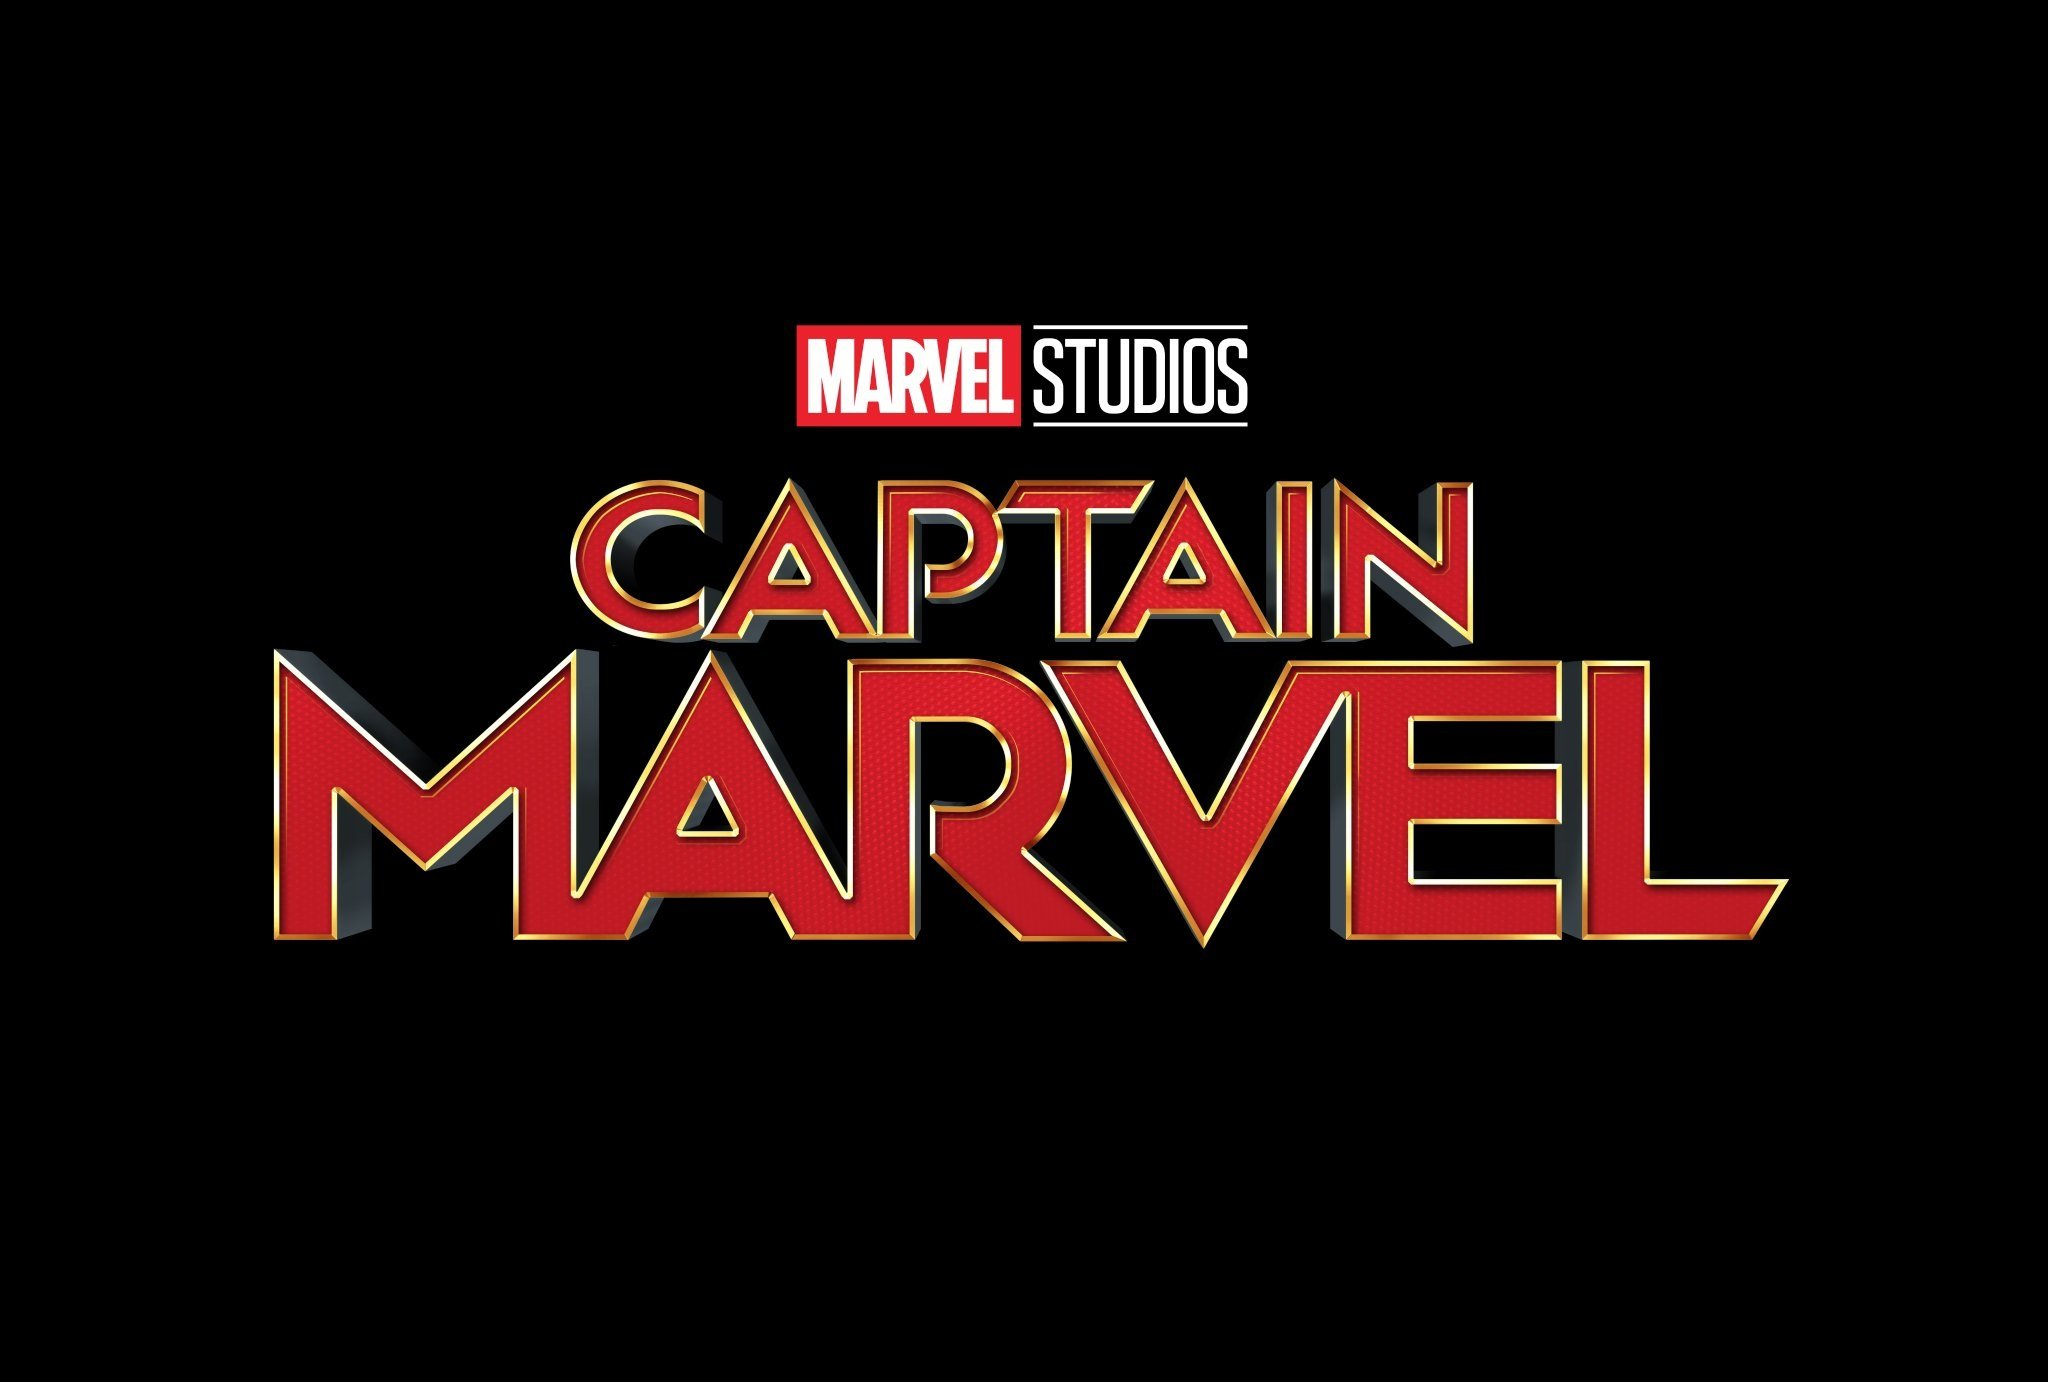 It's Finally Official: Brie Larson Will Play Captain Marvel